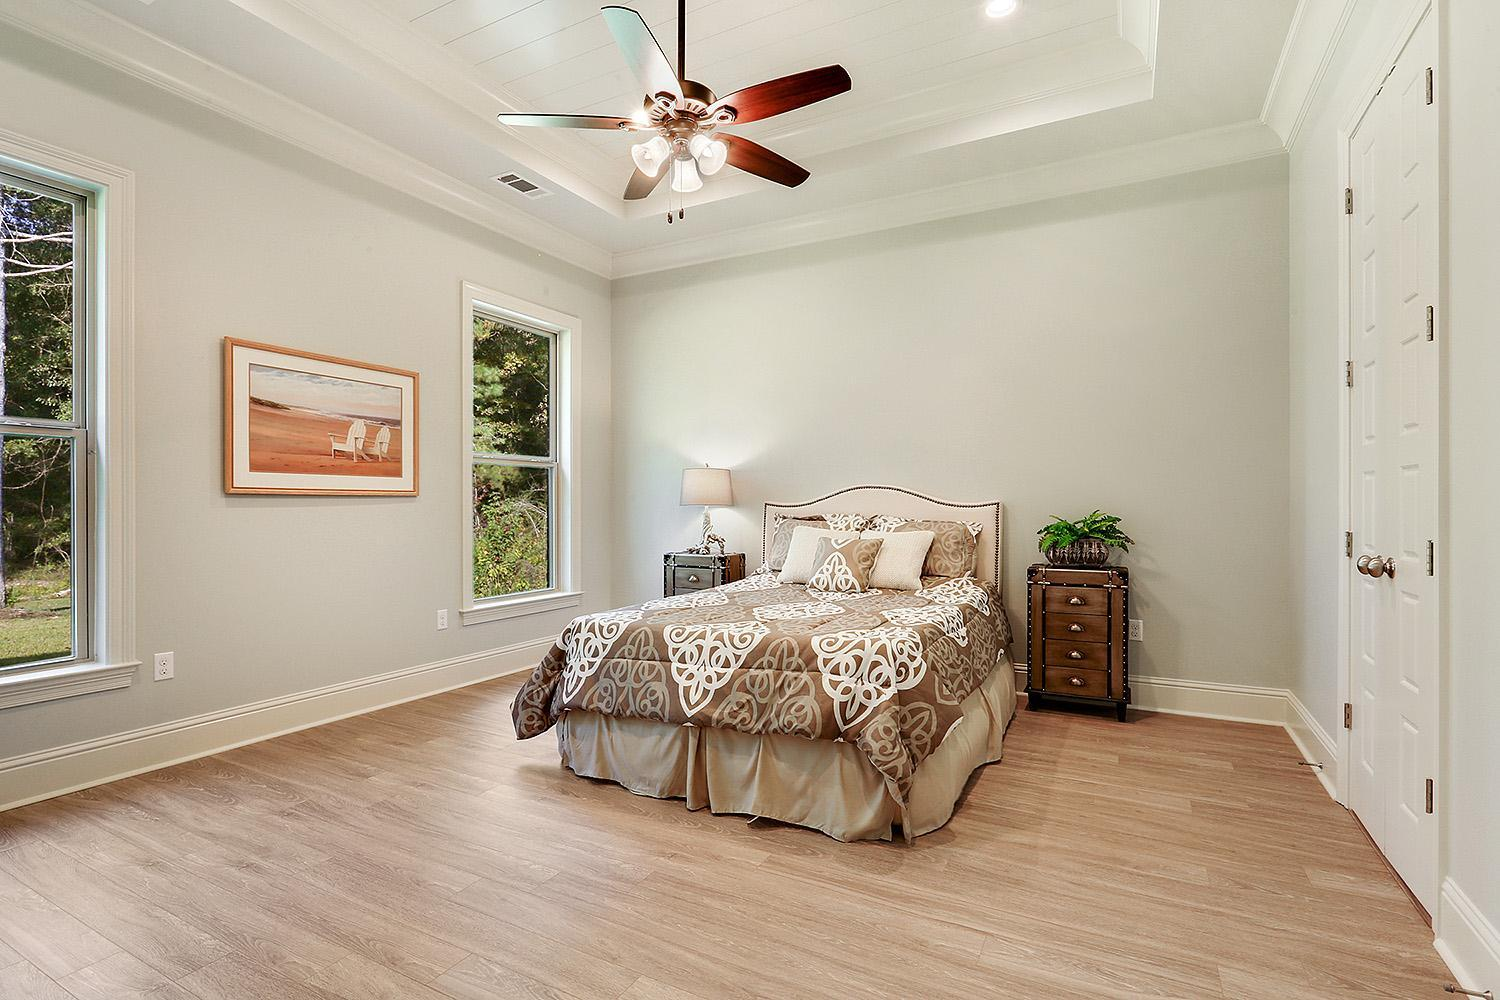 Bedroom featured in the Sandalwood By Highland Homes in New Orleans, LA